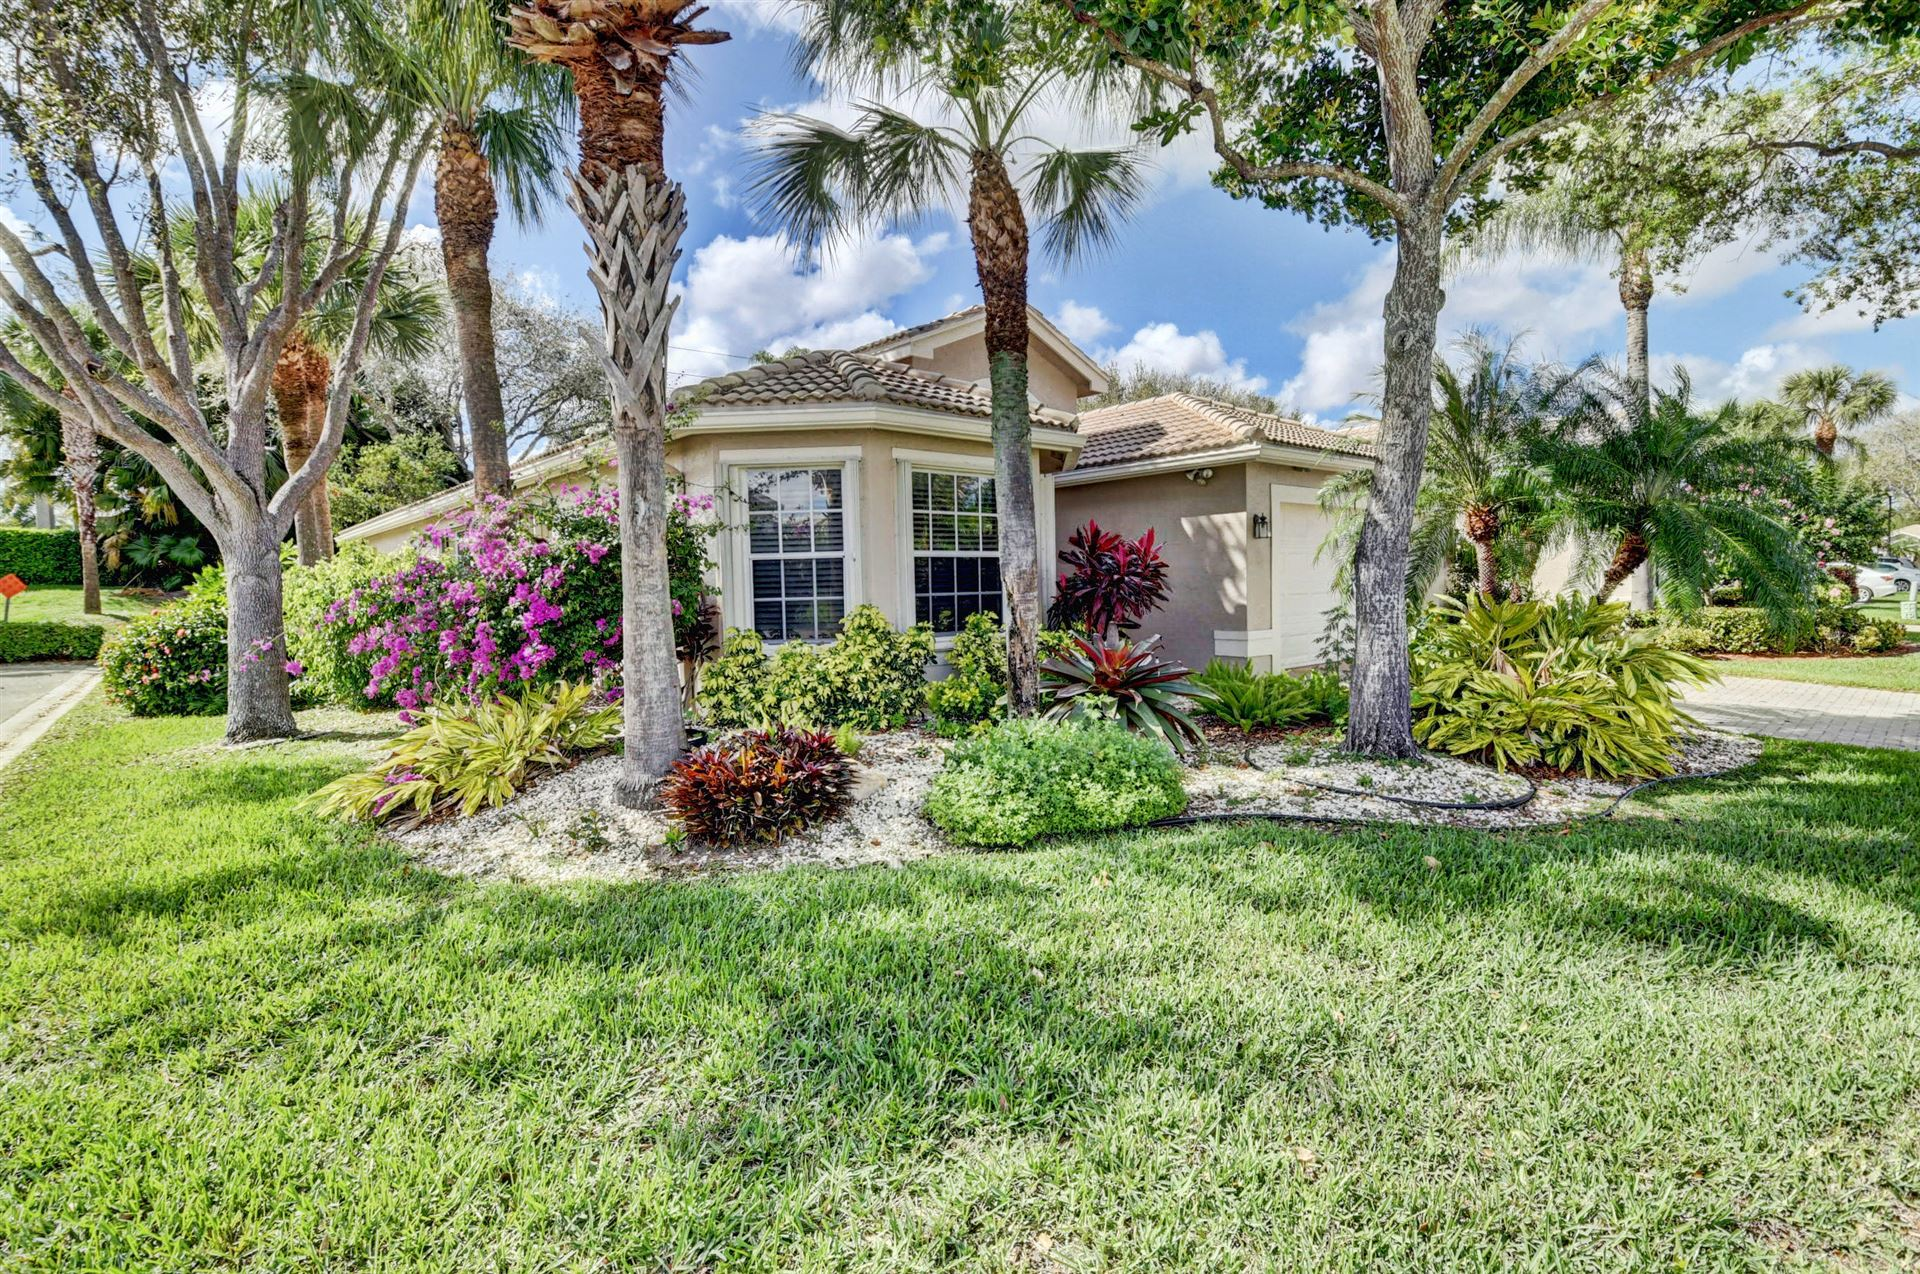 13075 Misty Gilbralter Way, Delray Beach, FL 33446 - #: RX-10695884